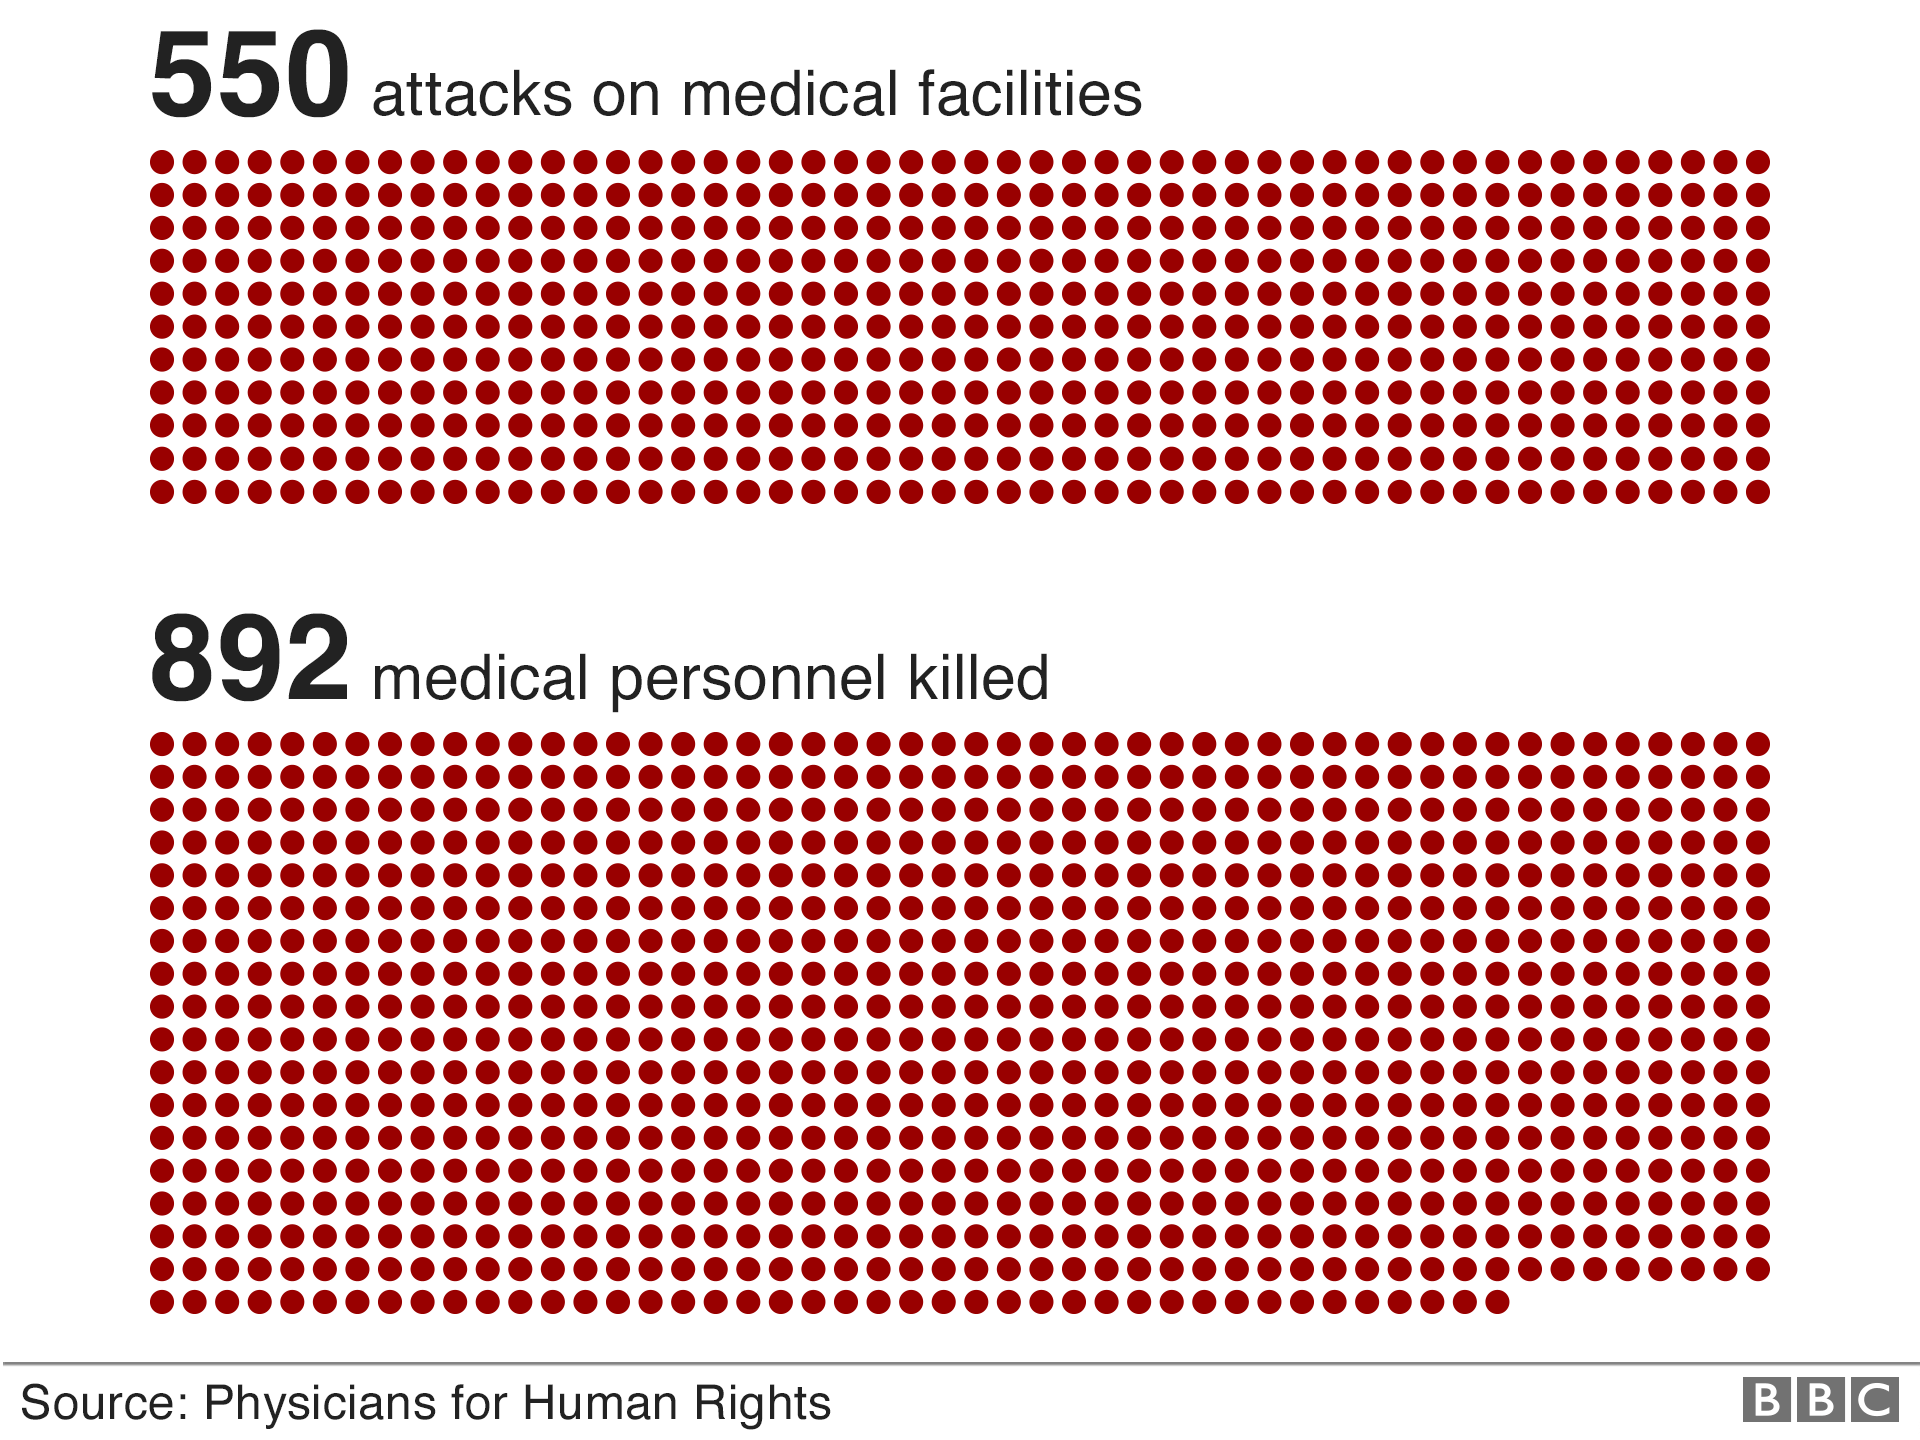 Chart showing how there have been 550 attacks on medical facilities